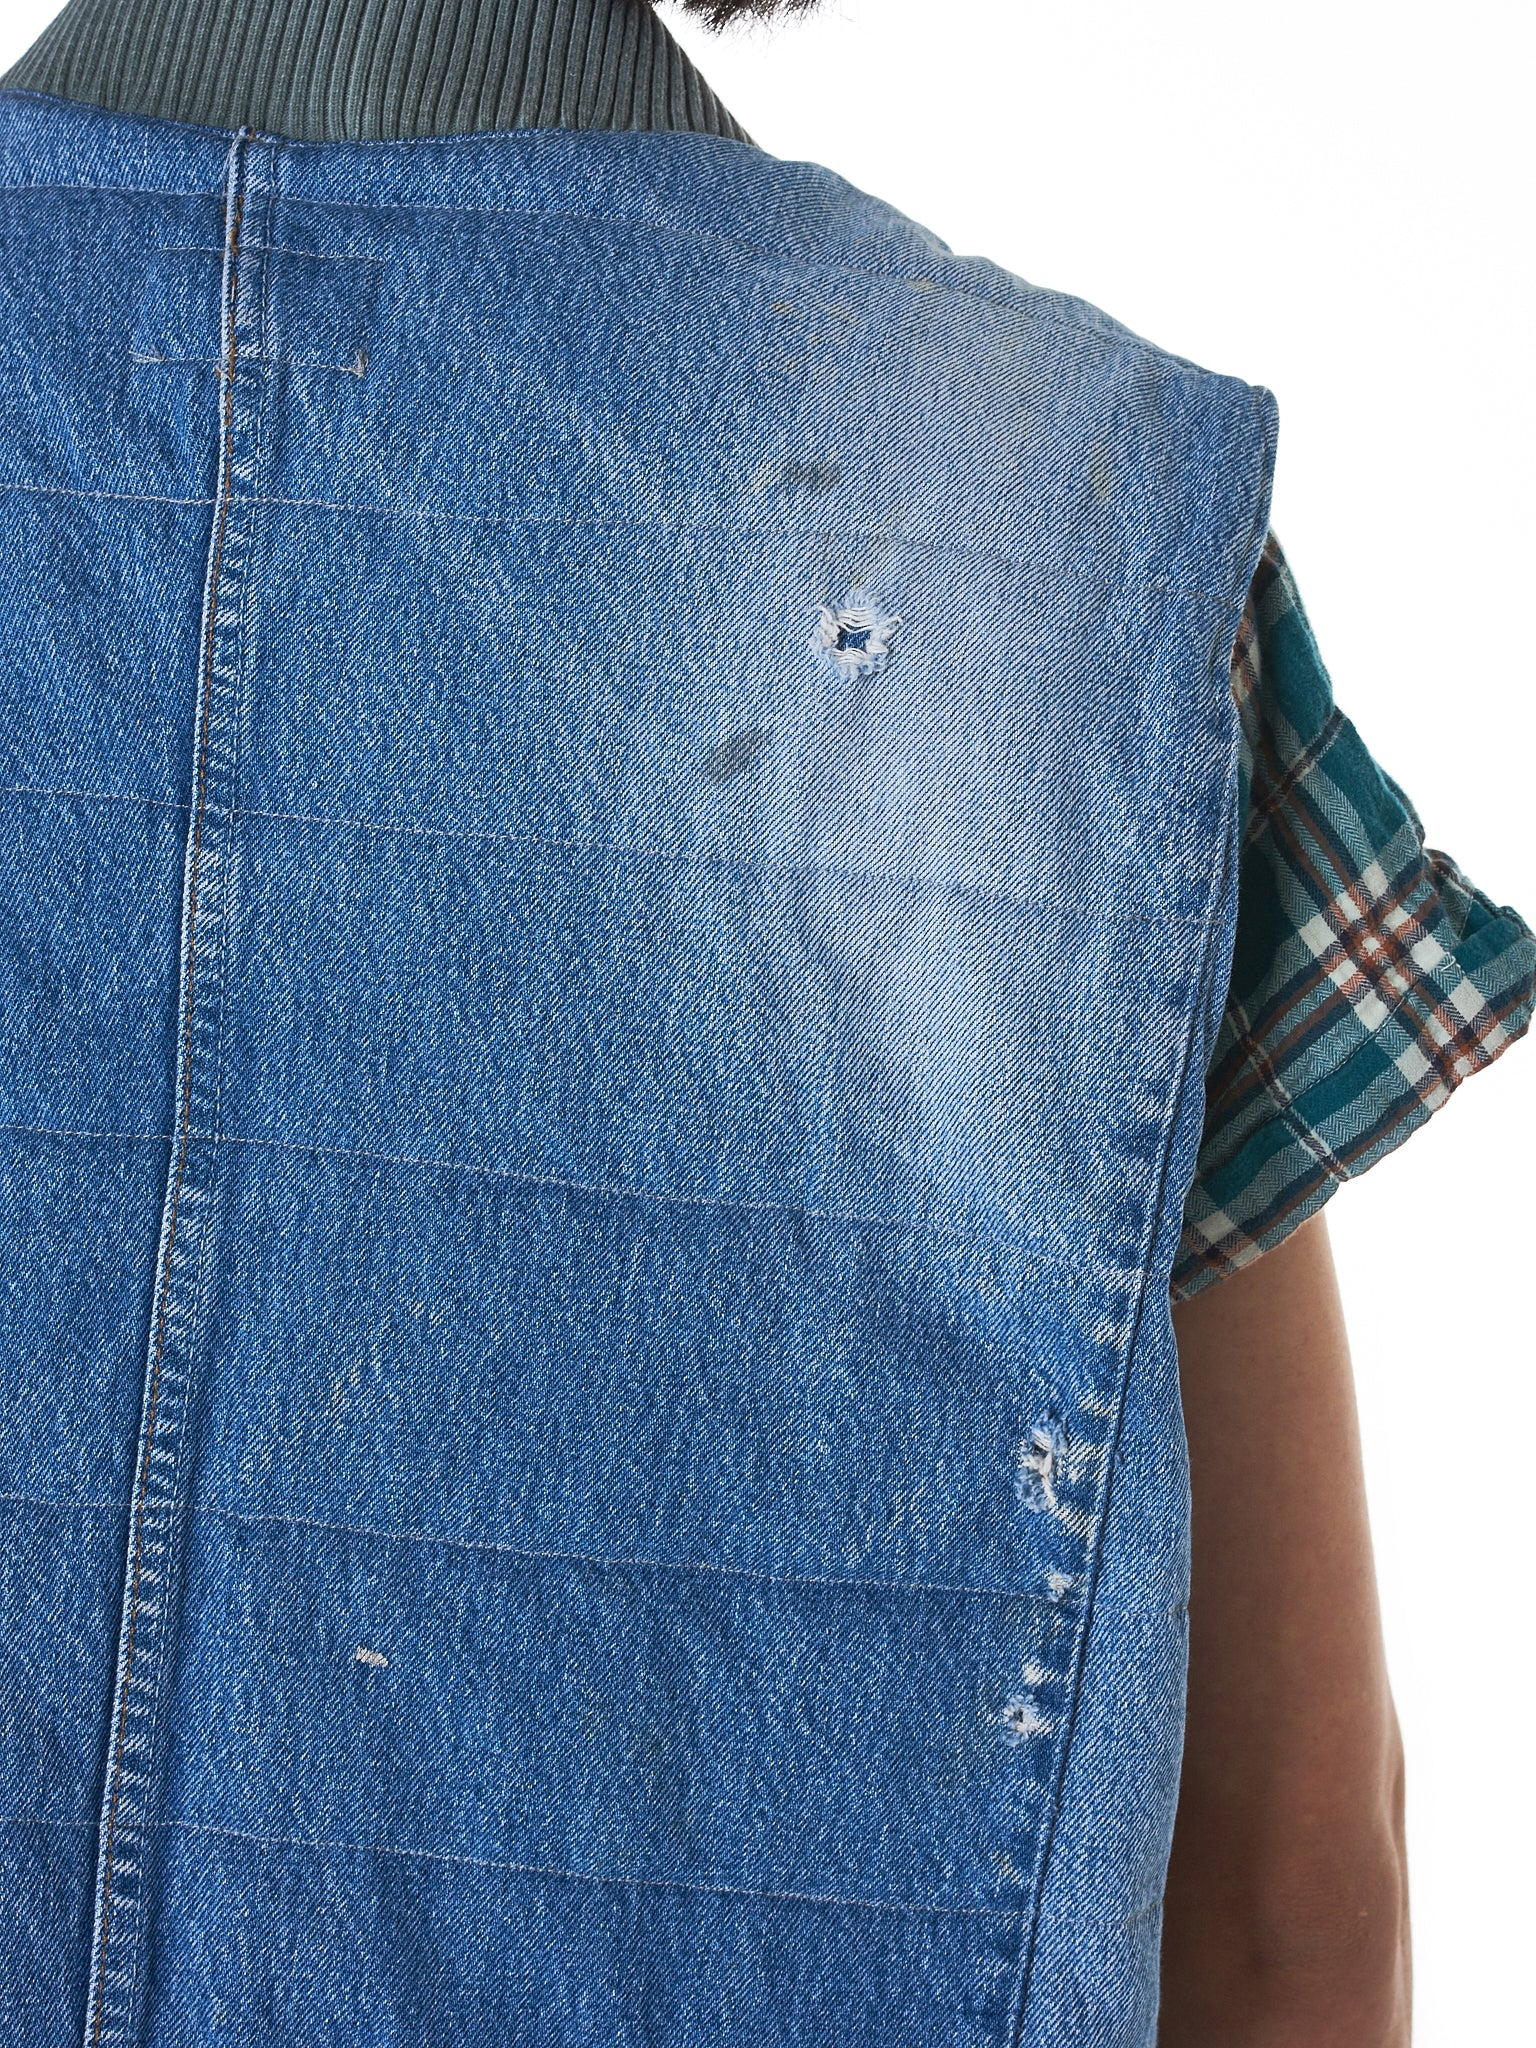 Greg Lauren Denim Vest - Hlorenzo Detail 3